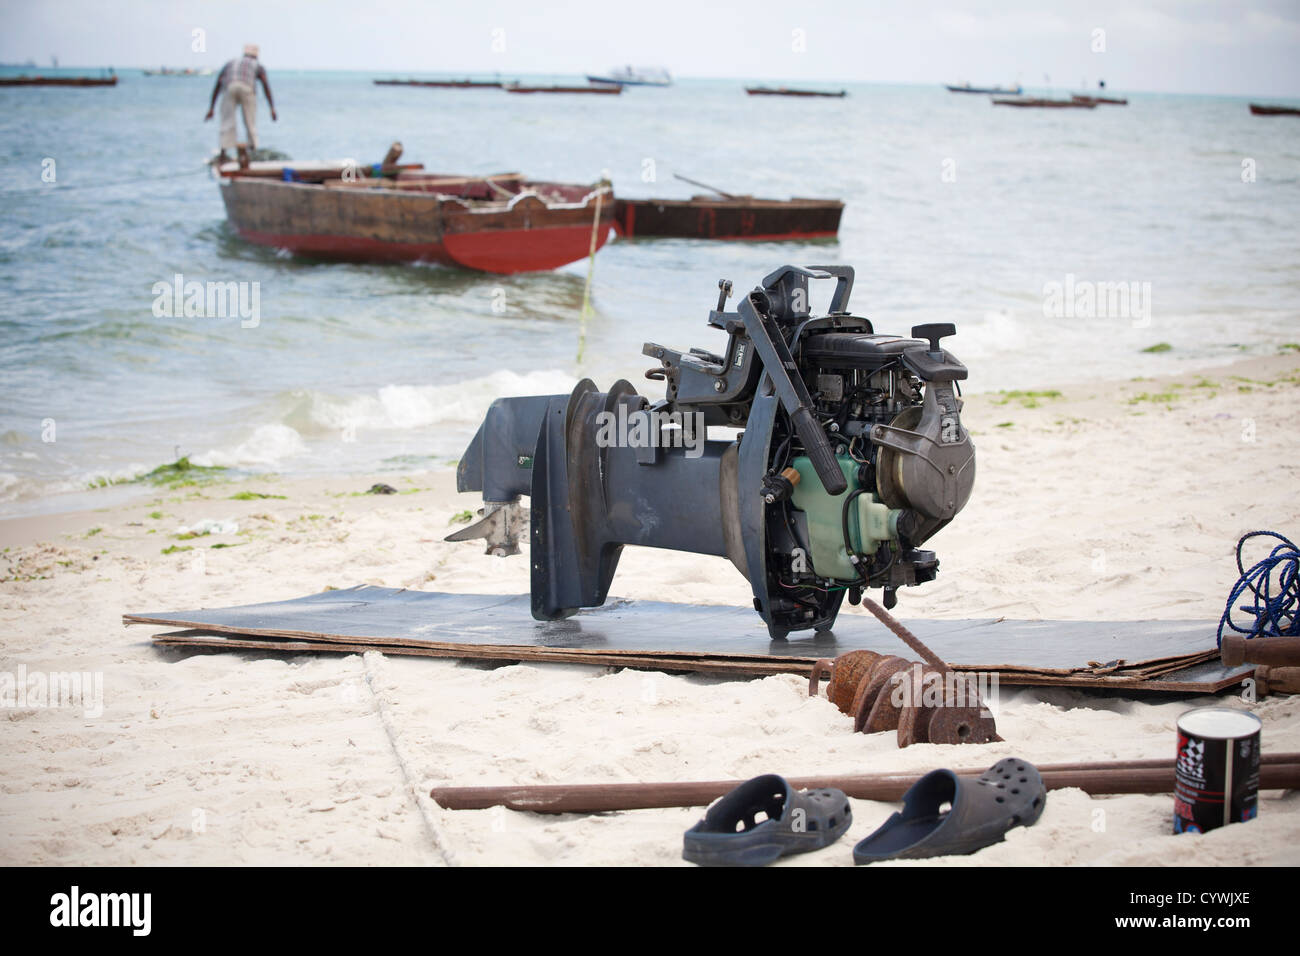 Dismantled engine stock photos dismantled engine stock for Trolling motor repair near me